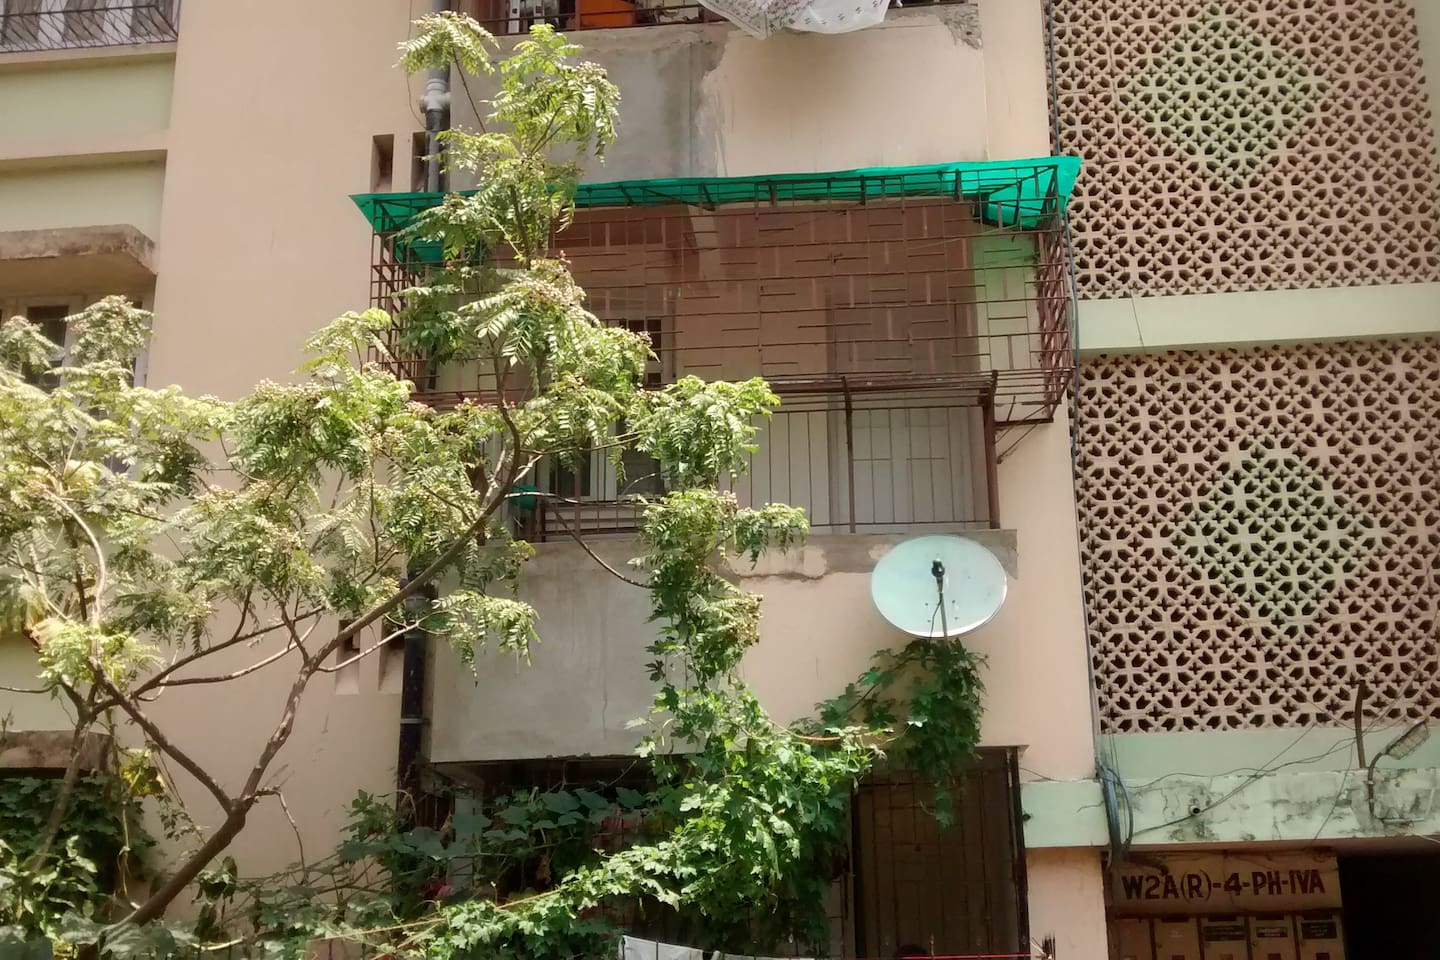 Apartment located on the 1st floor